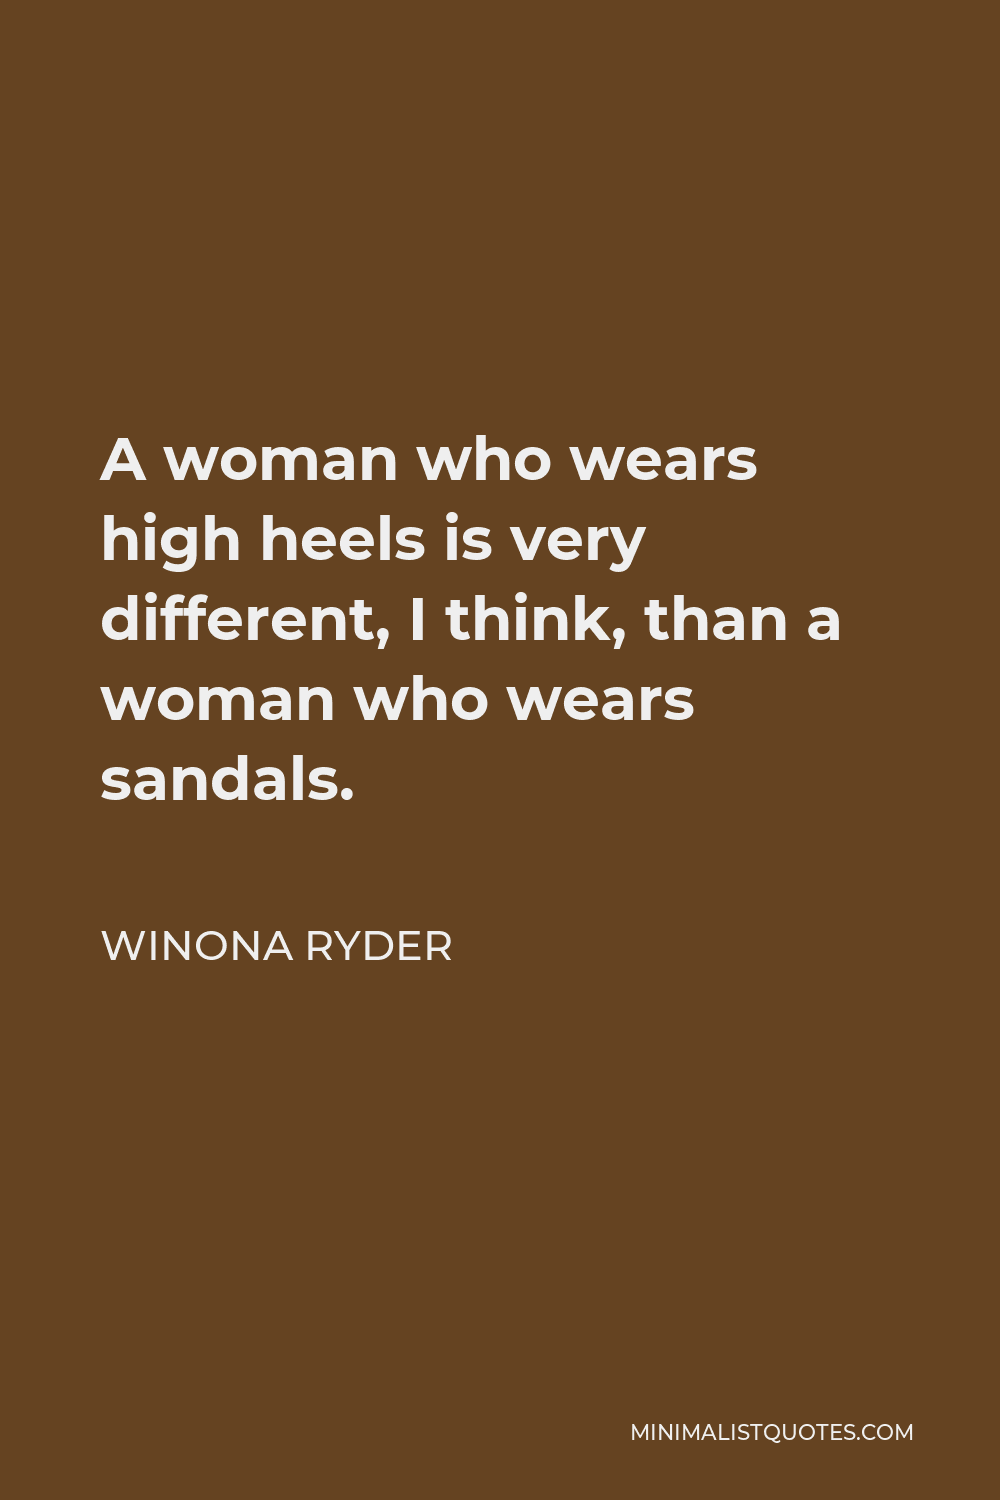 Winona Ryder Quote - A woman who wears high heels is very different, I think, than a woman who wears sandals.